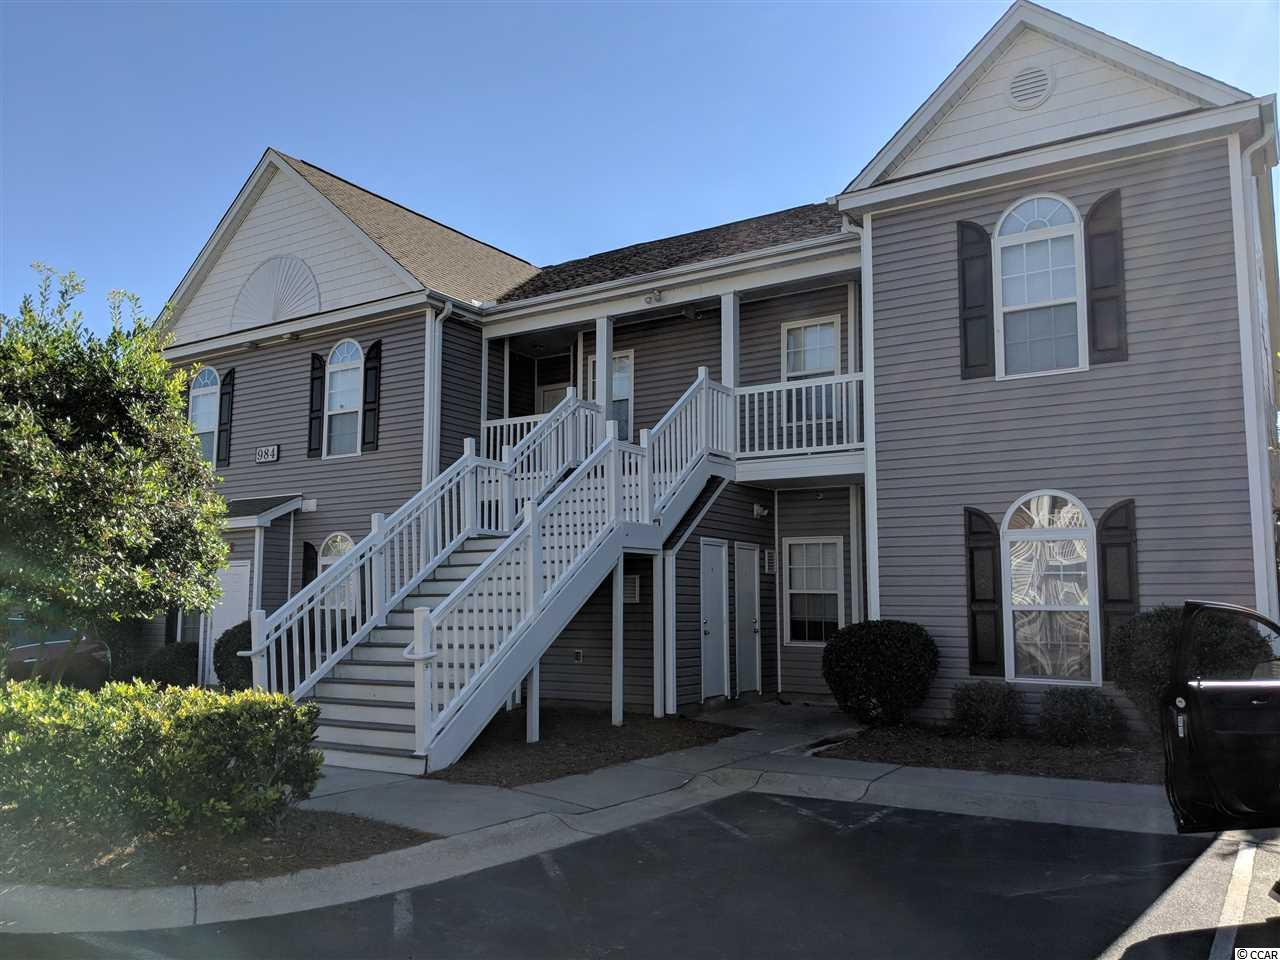 This wonderful 3 bedroom 2 bath condo is located in the private gated neighborhood Pawleys Pavilion. It's just a short ride to fabulous dinning, shopping and the beach. Unit is on the first floor and has recently been updated. Nice stainless steel appliances, new subway tile backsplash in kitchen, new breakfast nook pendent light and new ceiling fan in the living room. Plus a fresh new coat of light gray paint throughout. This unit is move in ready.